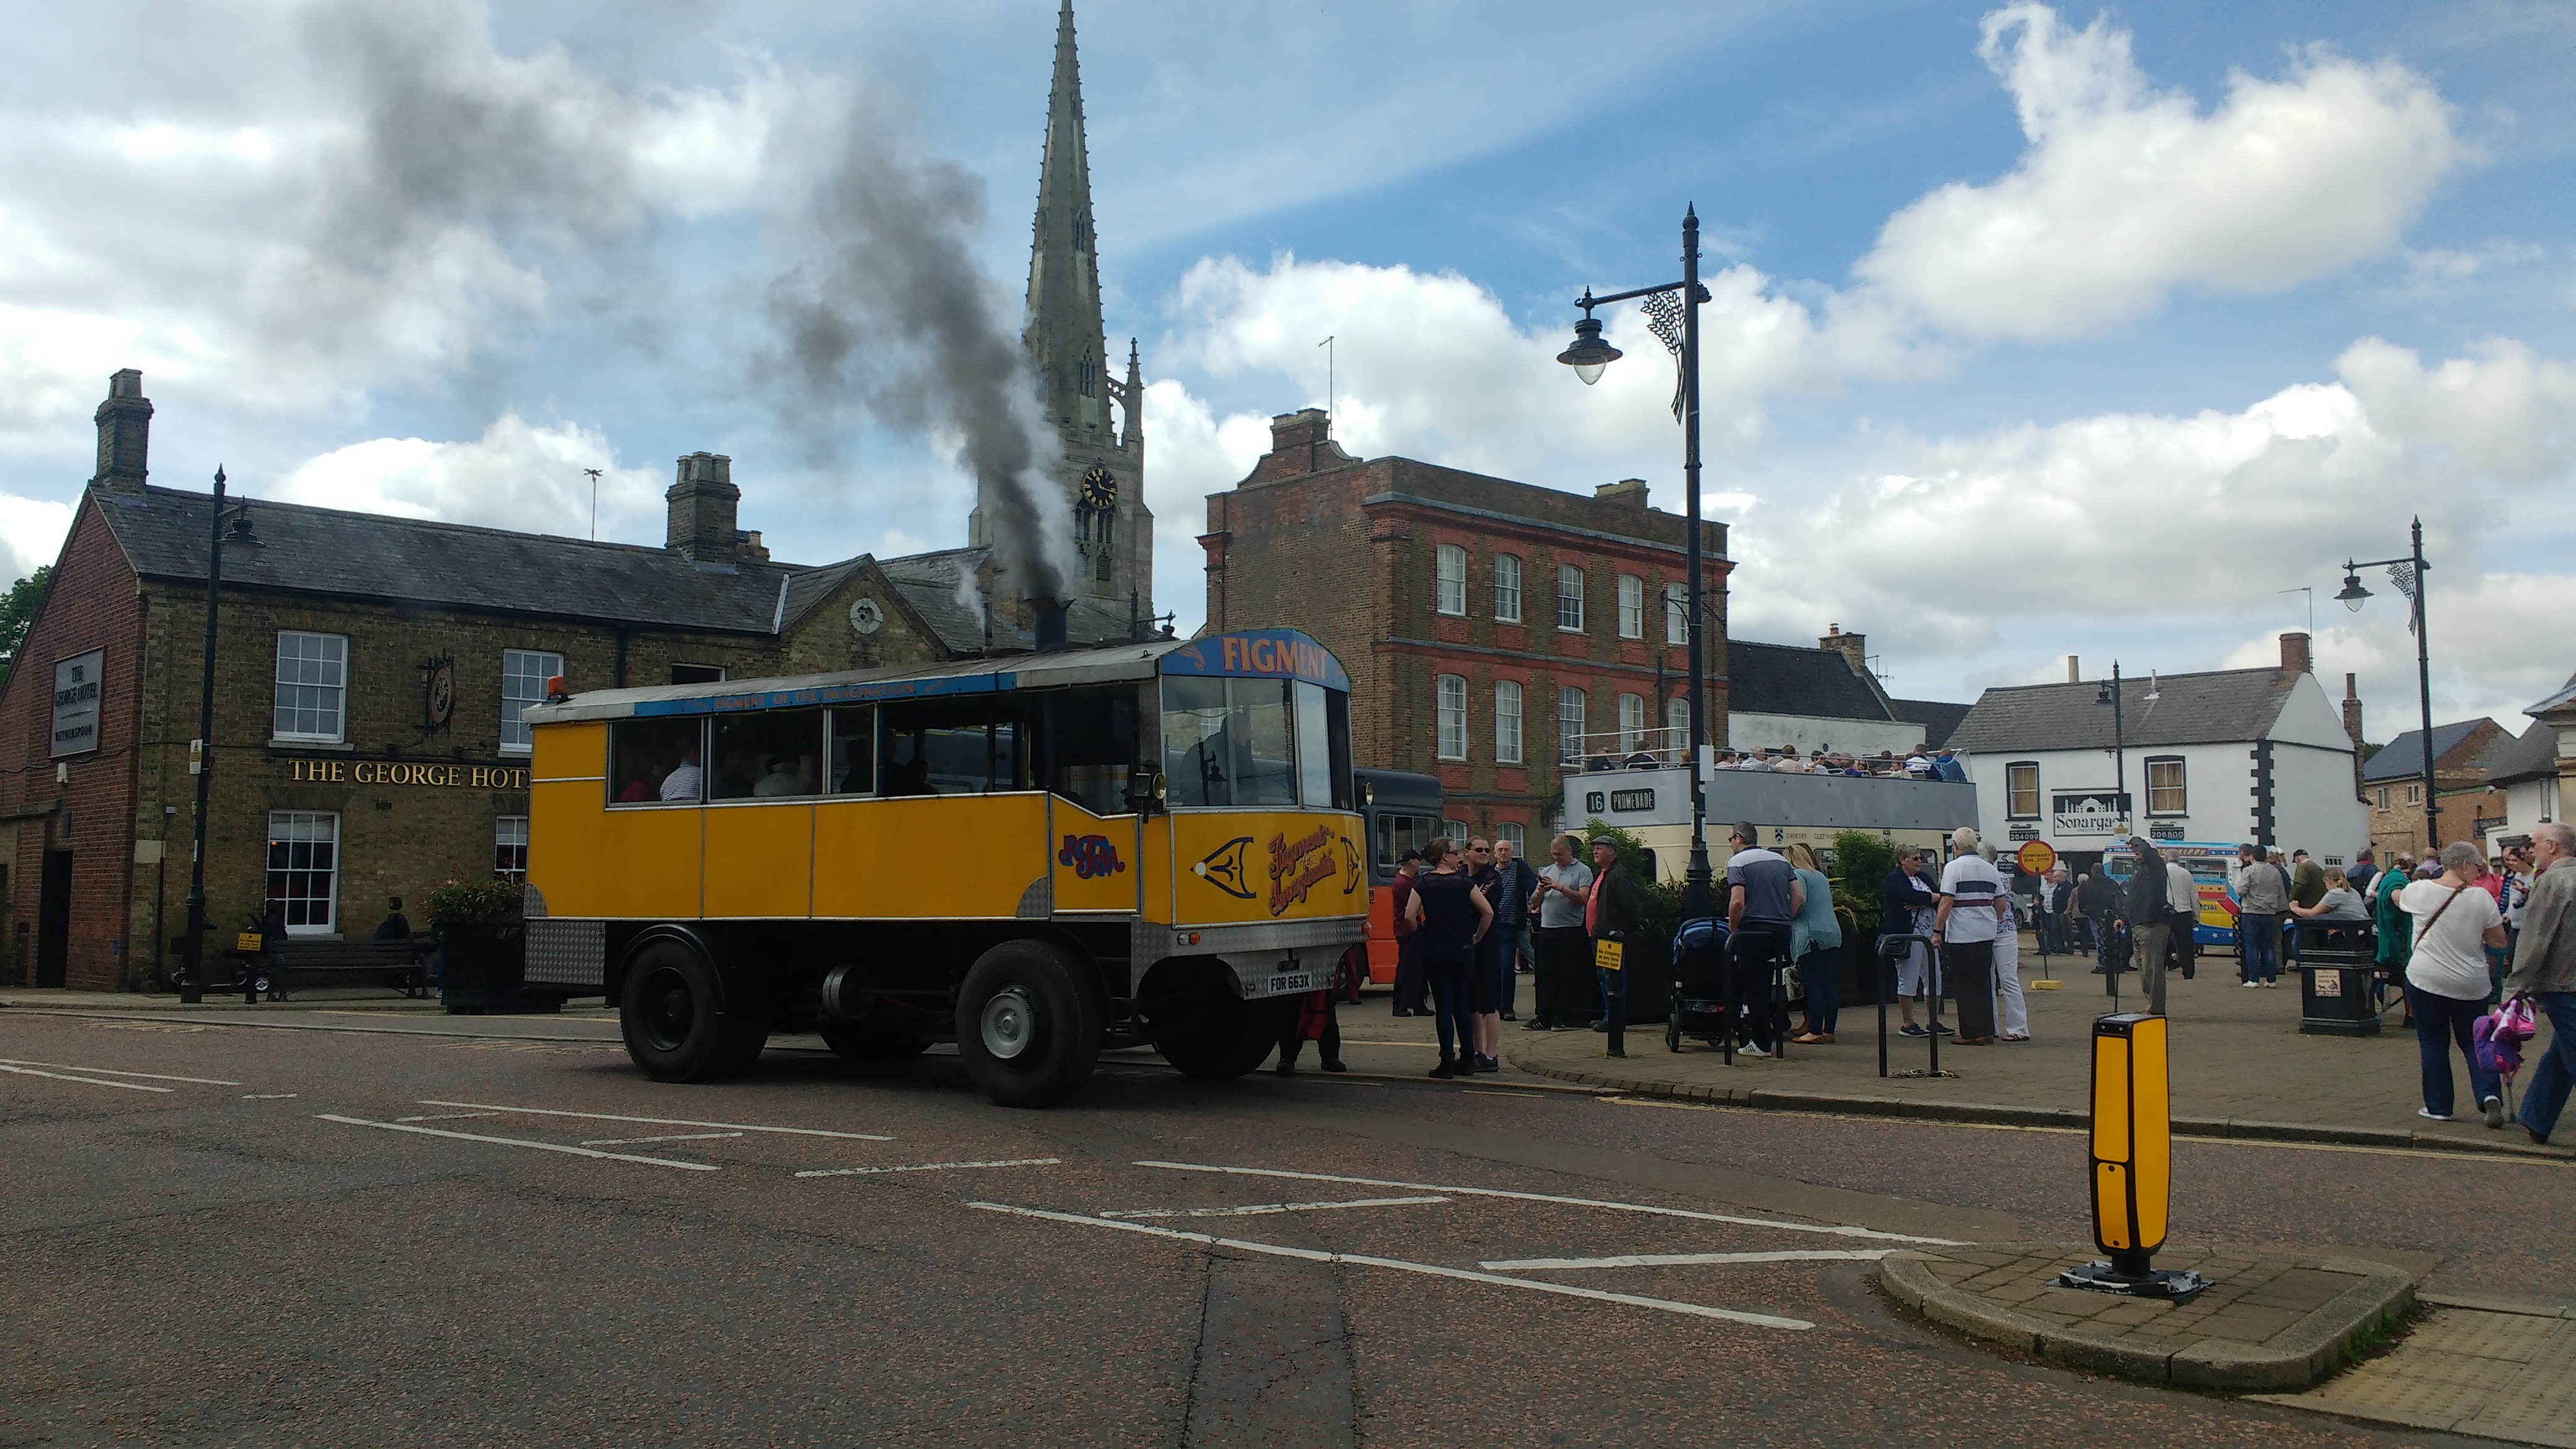 Whittlesey classic car & Busfest